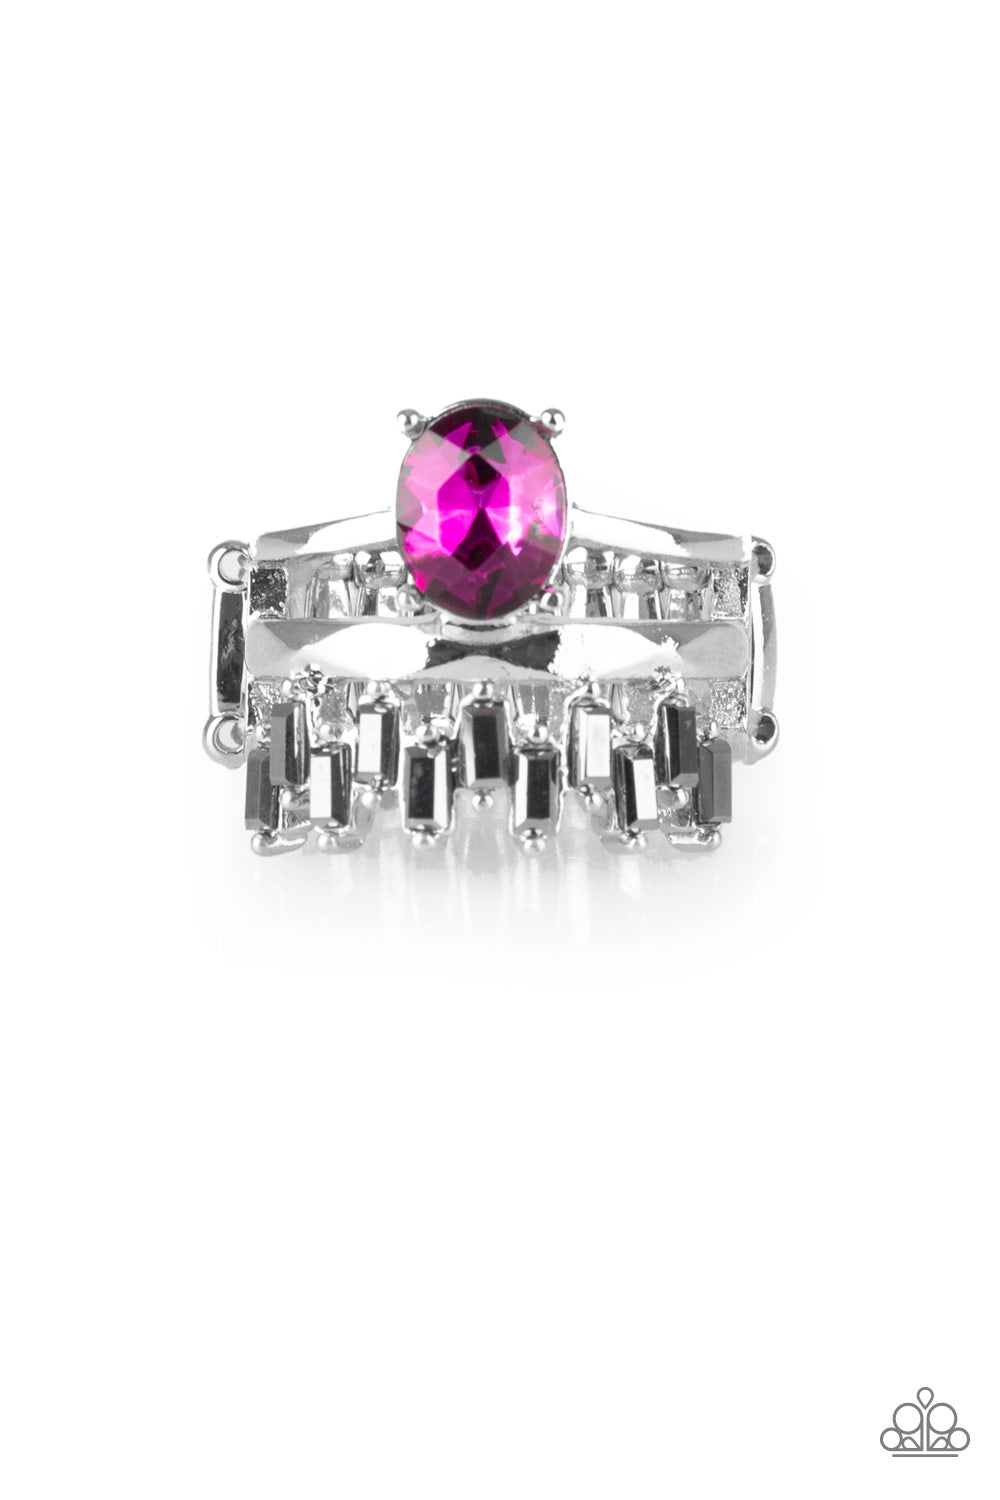 five-dollar-jewelry-crowned-victor-pink-ring-paparazzi-accessories